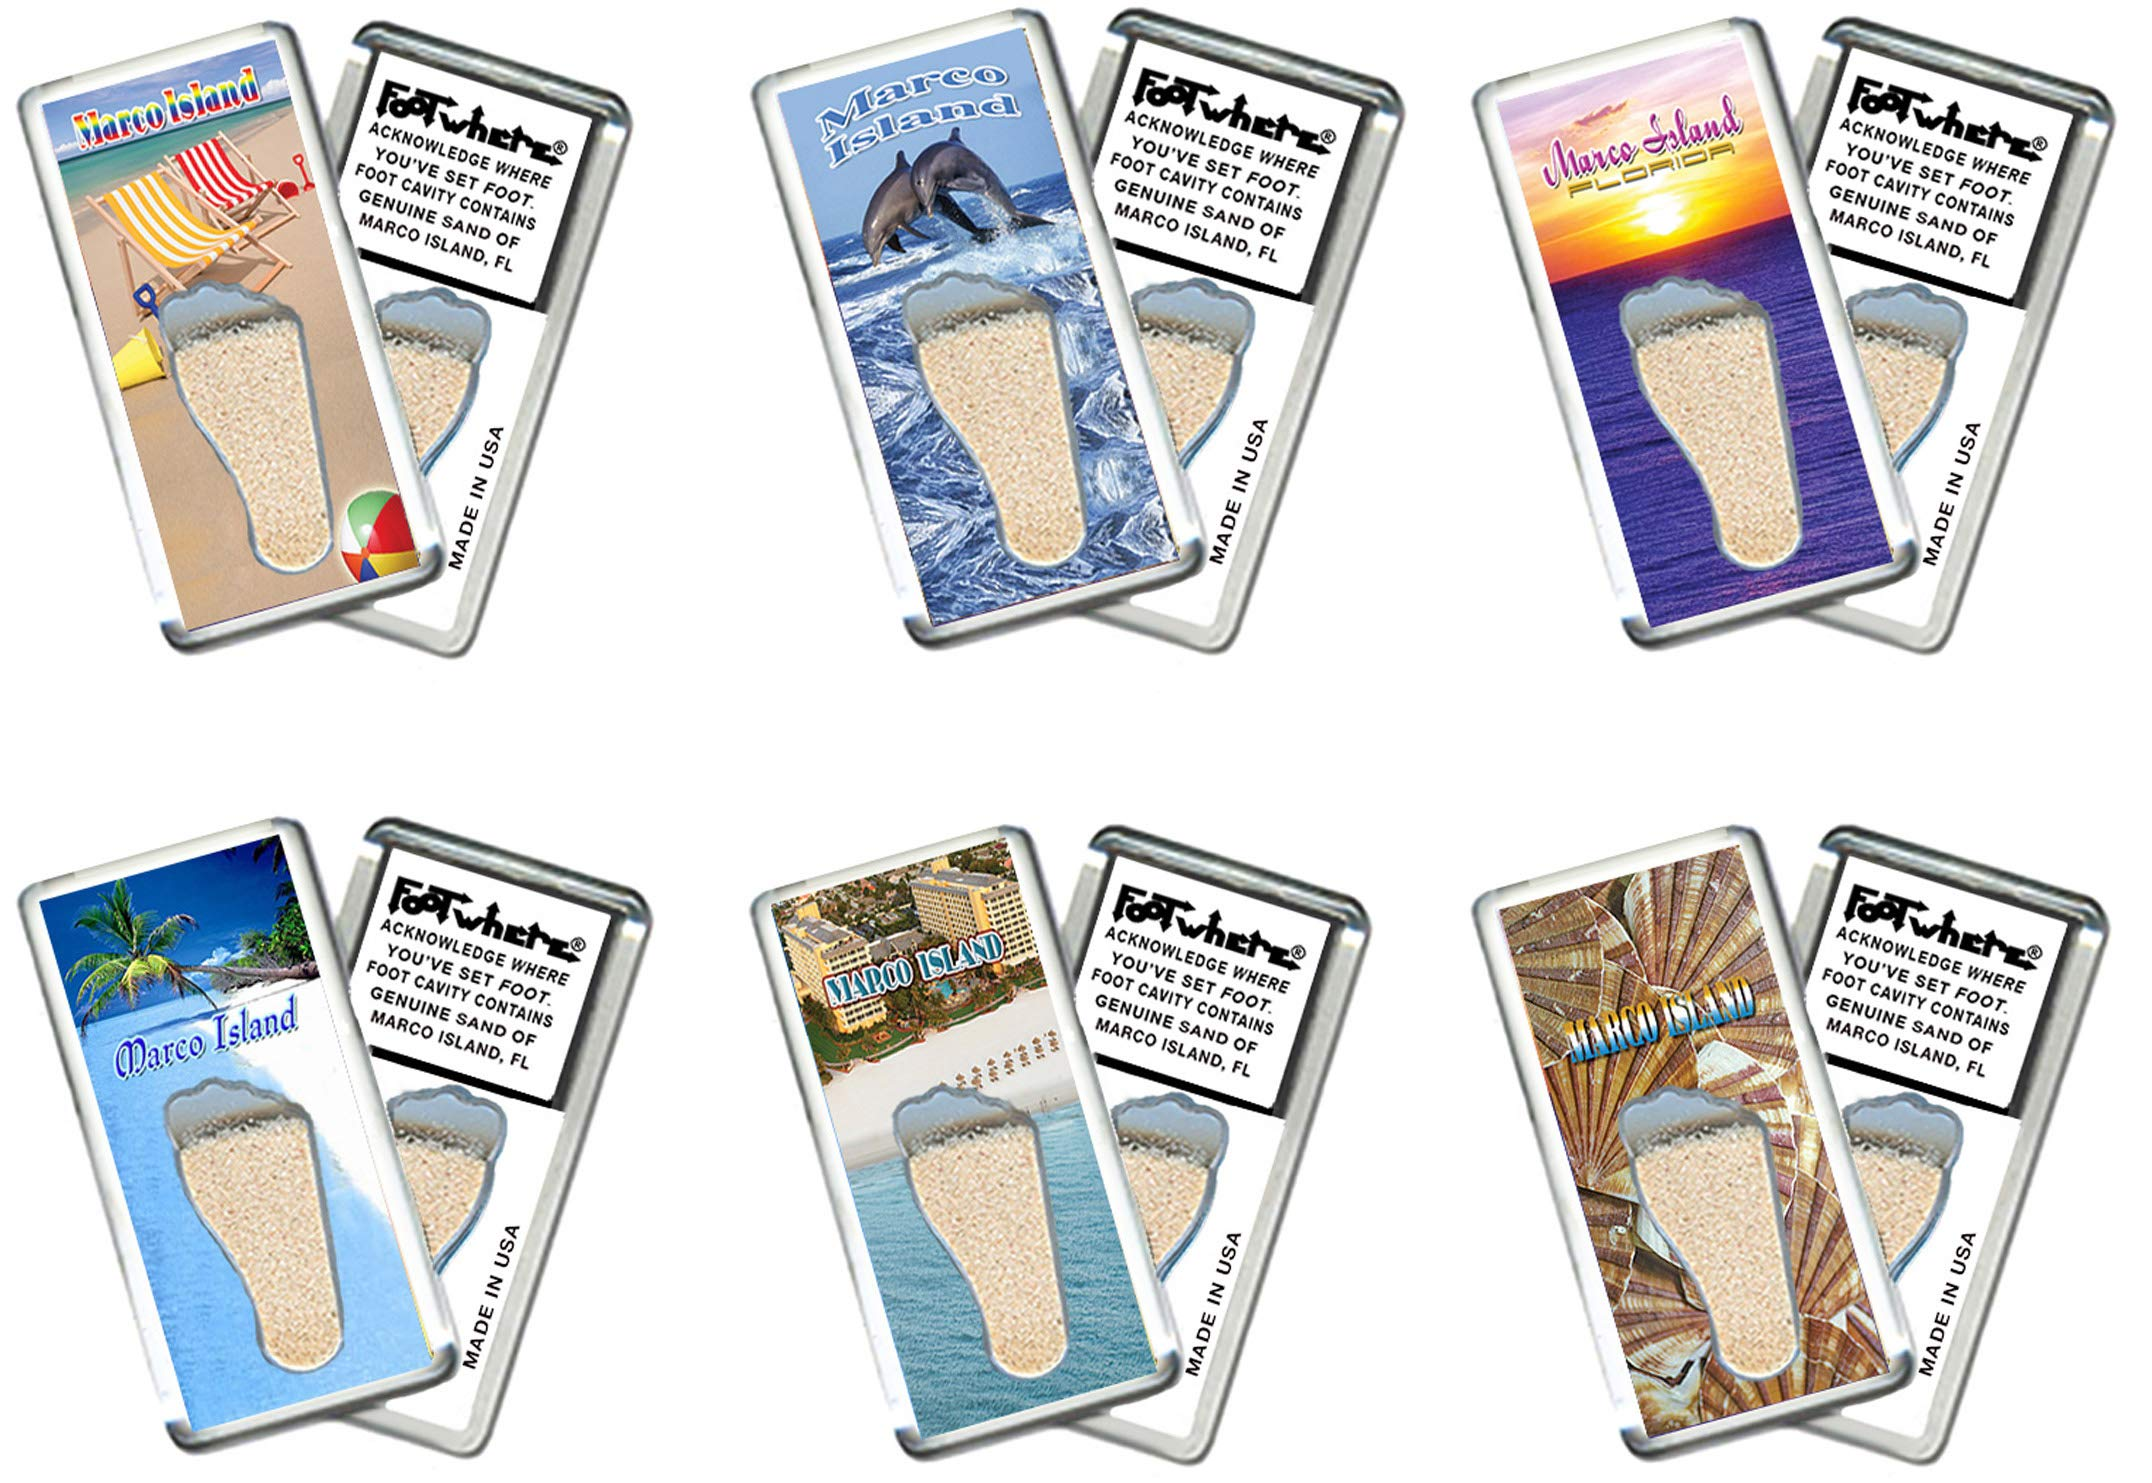 Marco Island, FL FootWhere Souvenir Fridge Magnets. 6 Piece Set. Made in USA by FootWhere